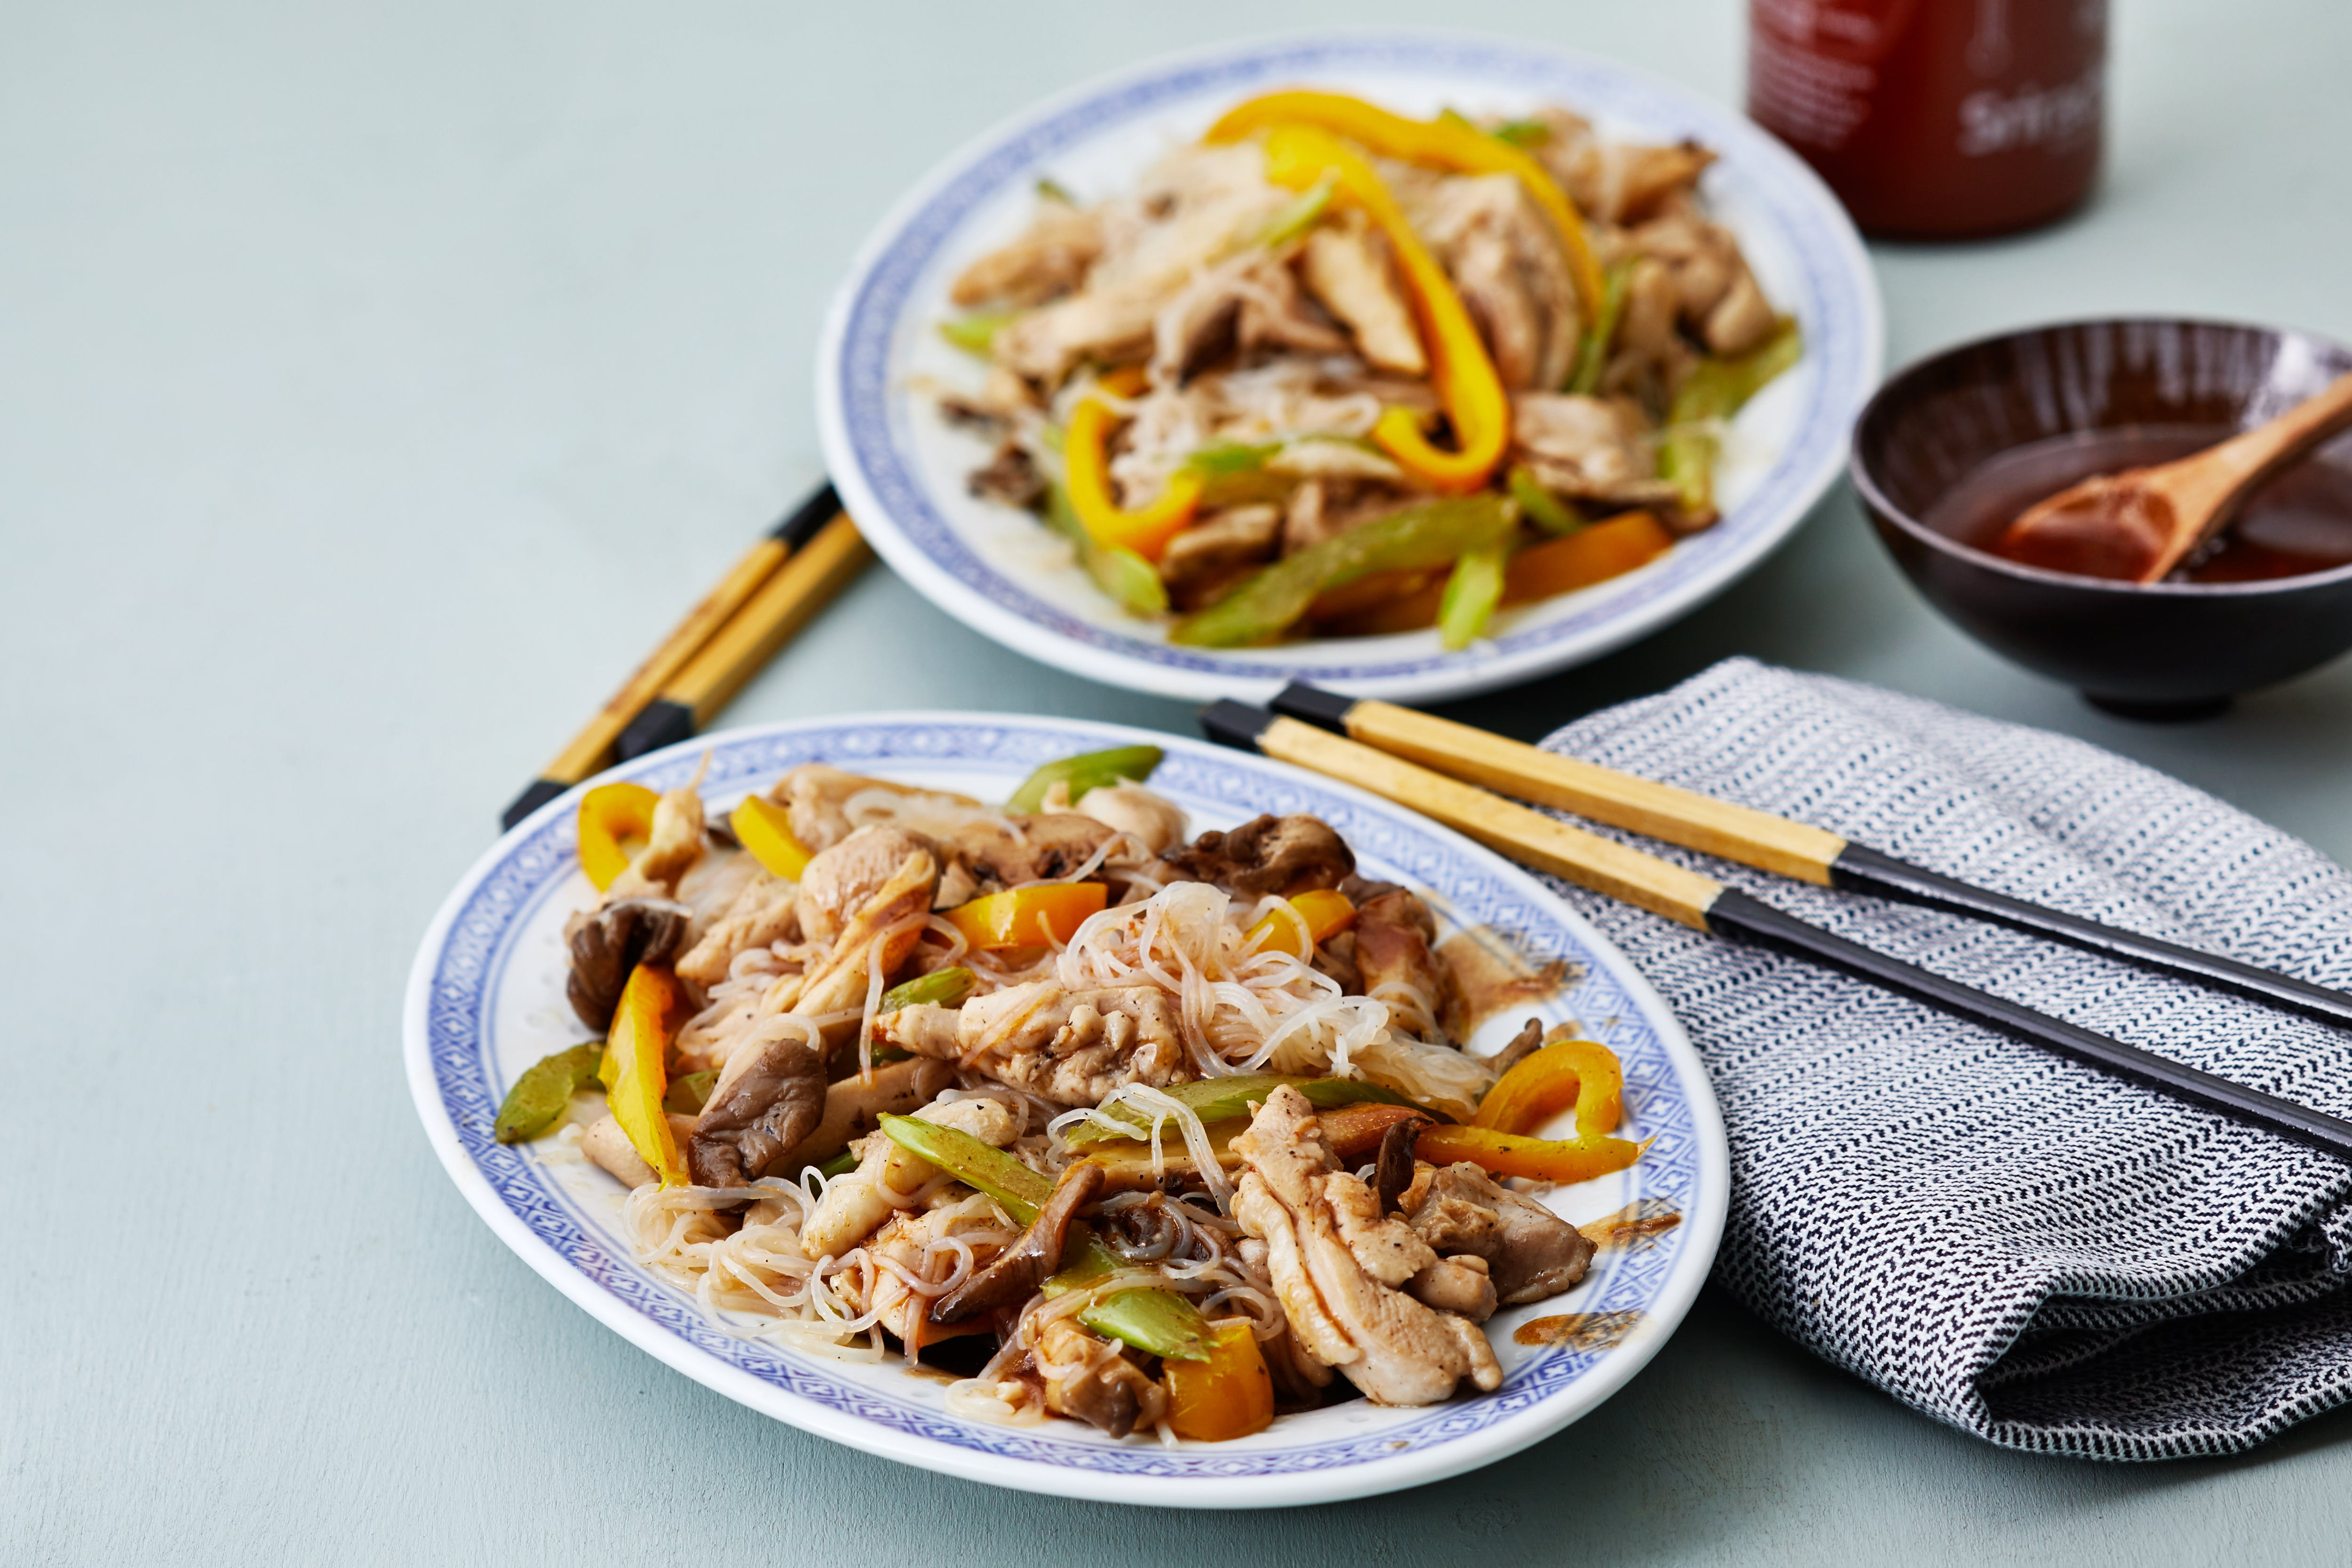 Keto chicken stir-fry with shirataki noodles